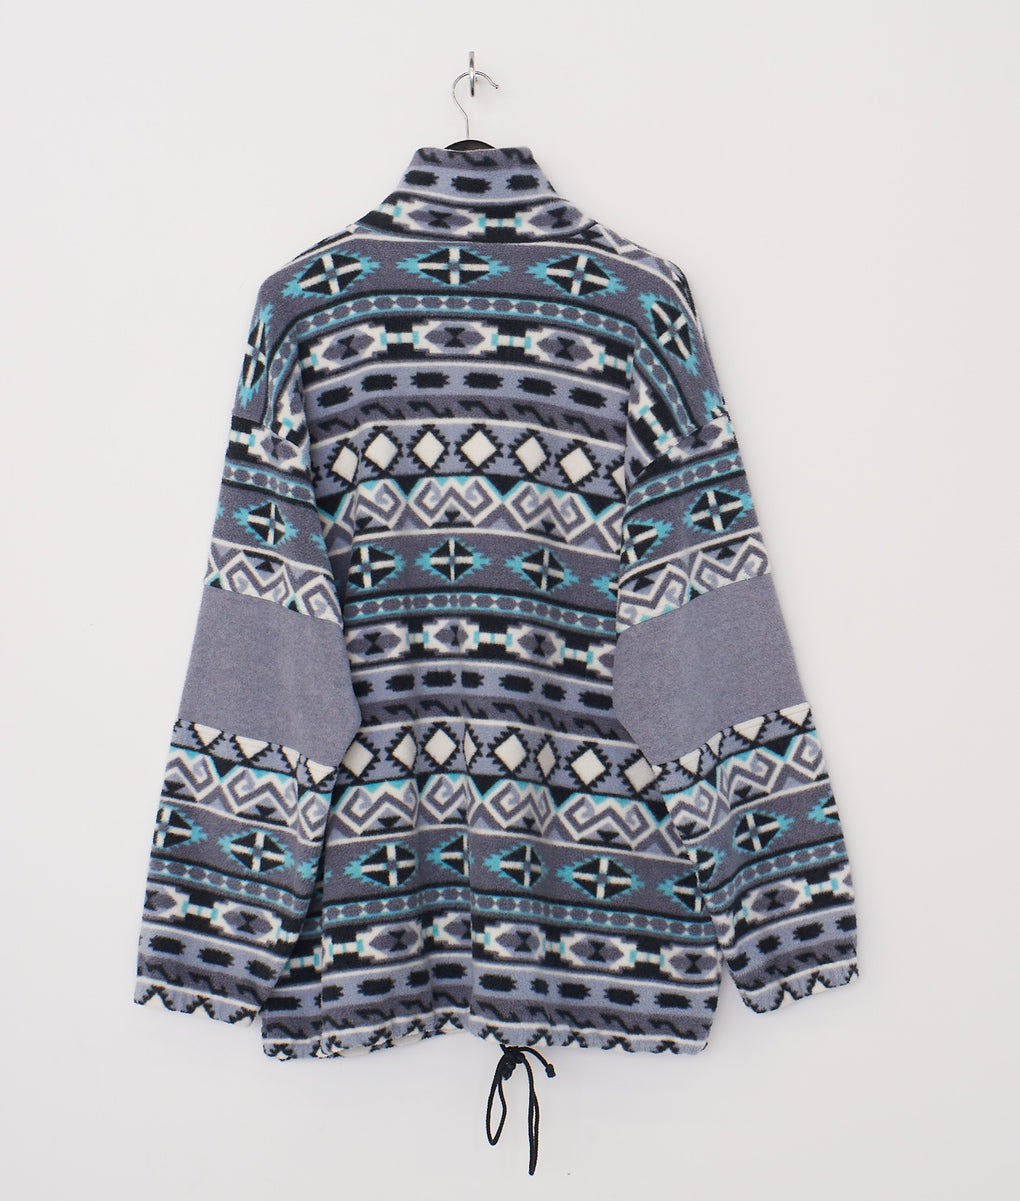 Aztec Overlord Fleece (XL)